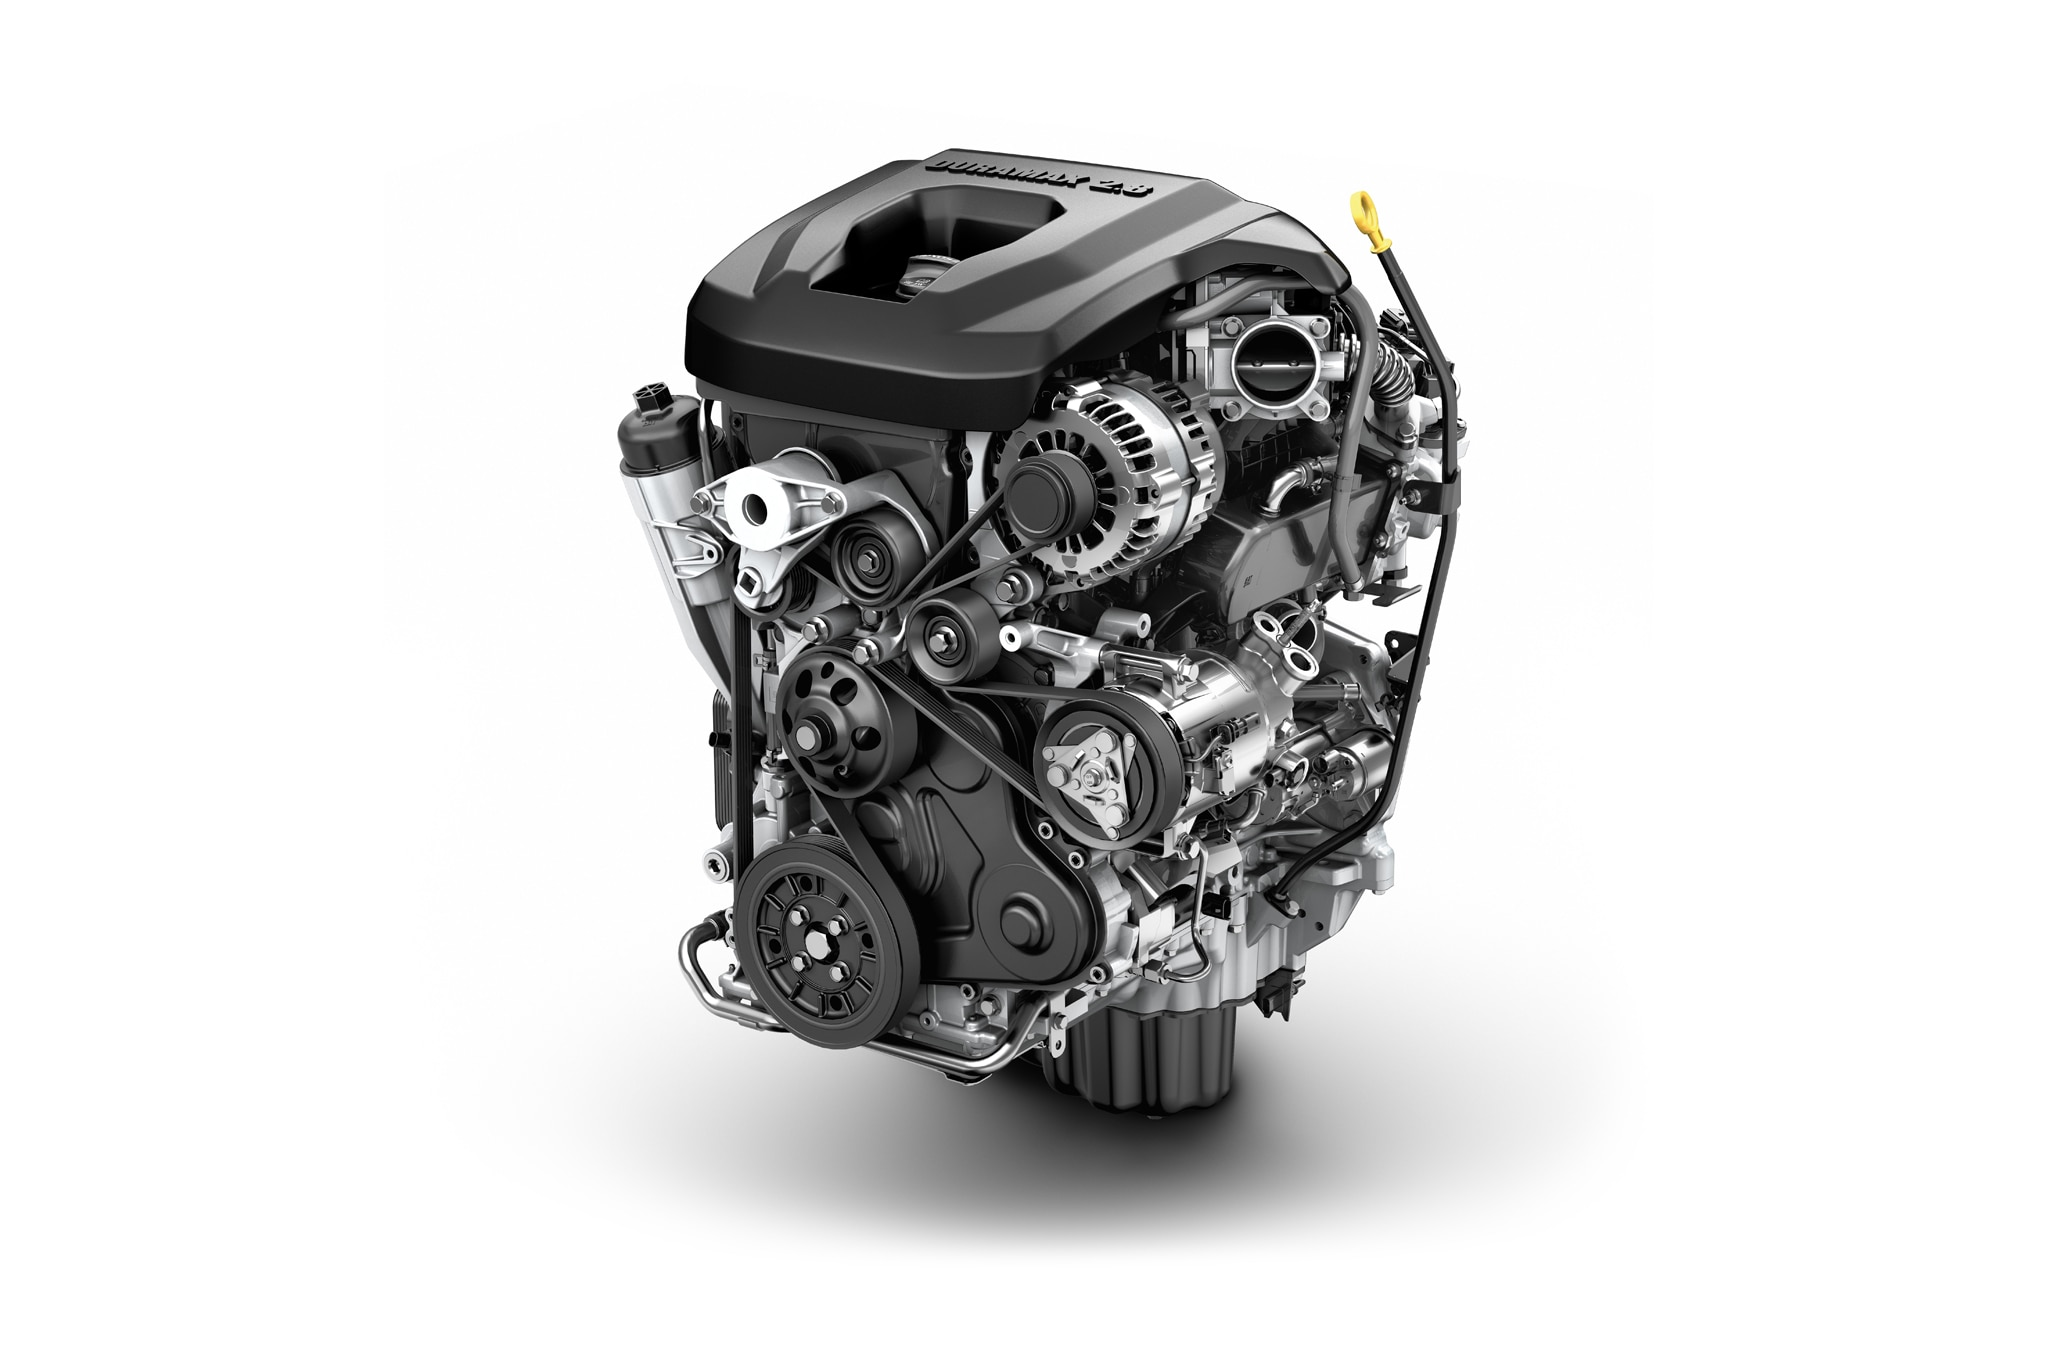 2015 Chevrolet Colorado Turbo Diesel engine